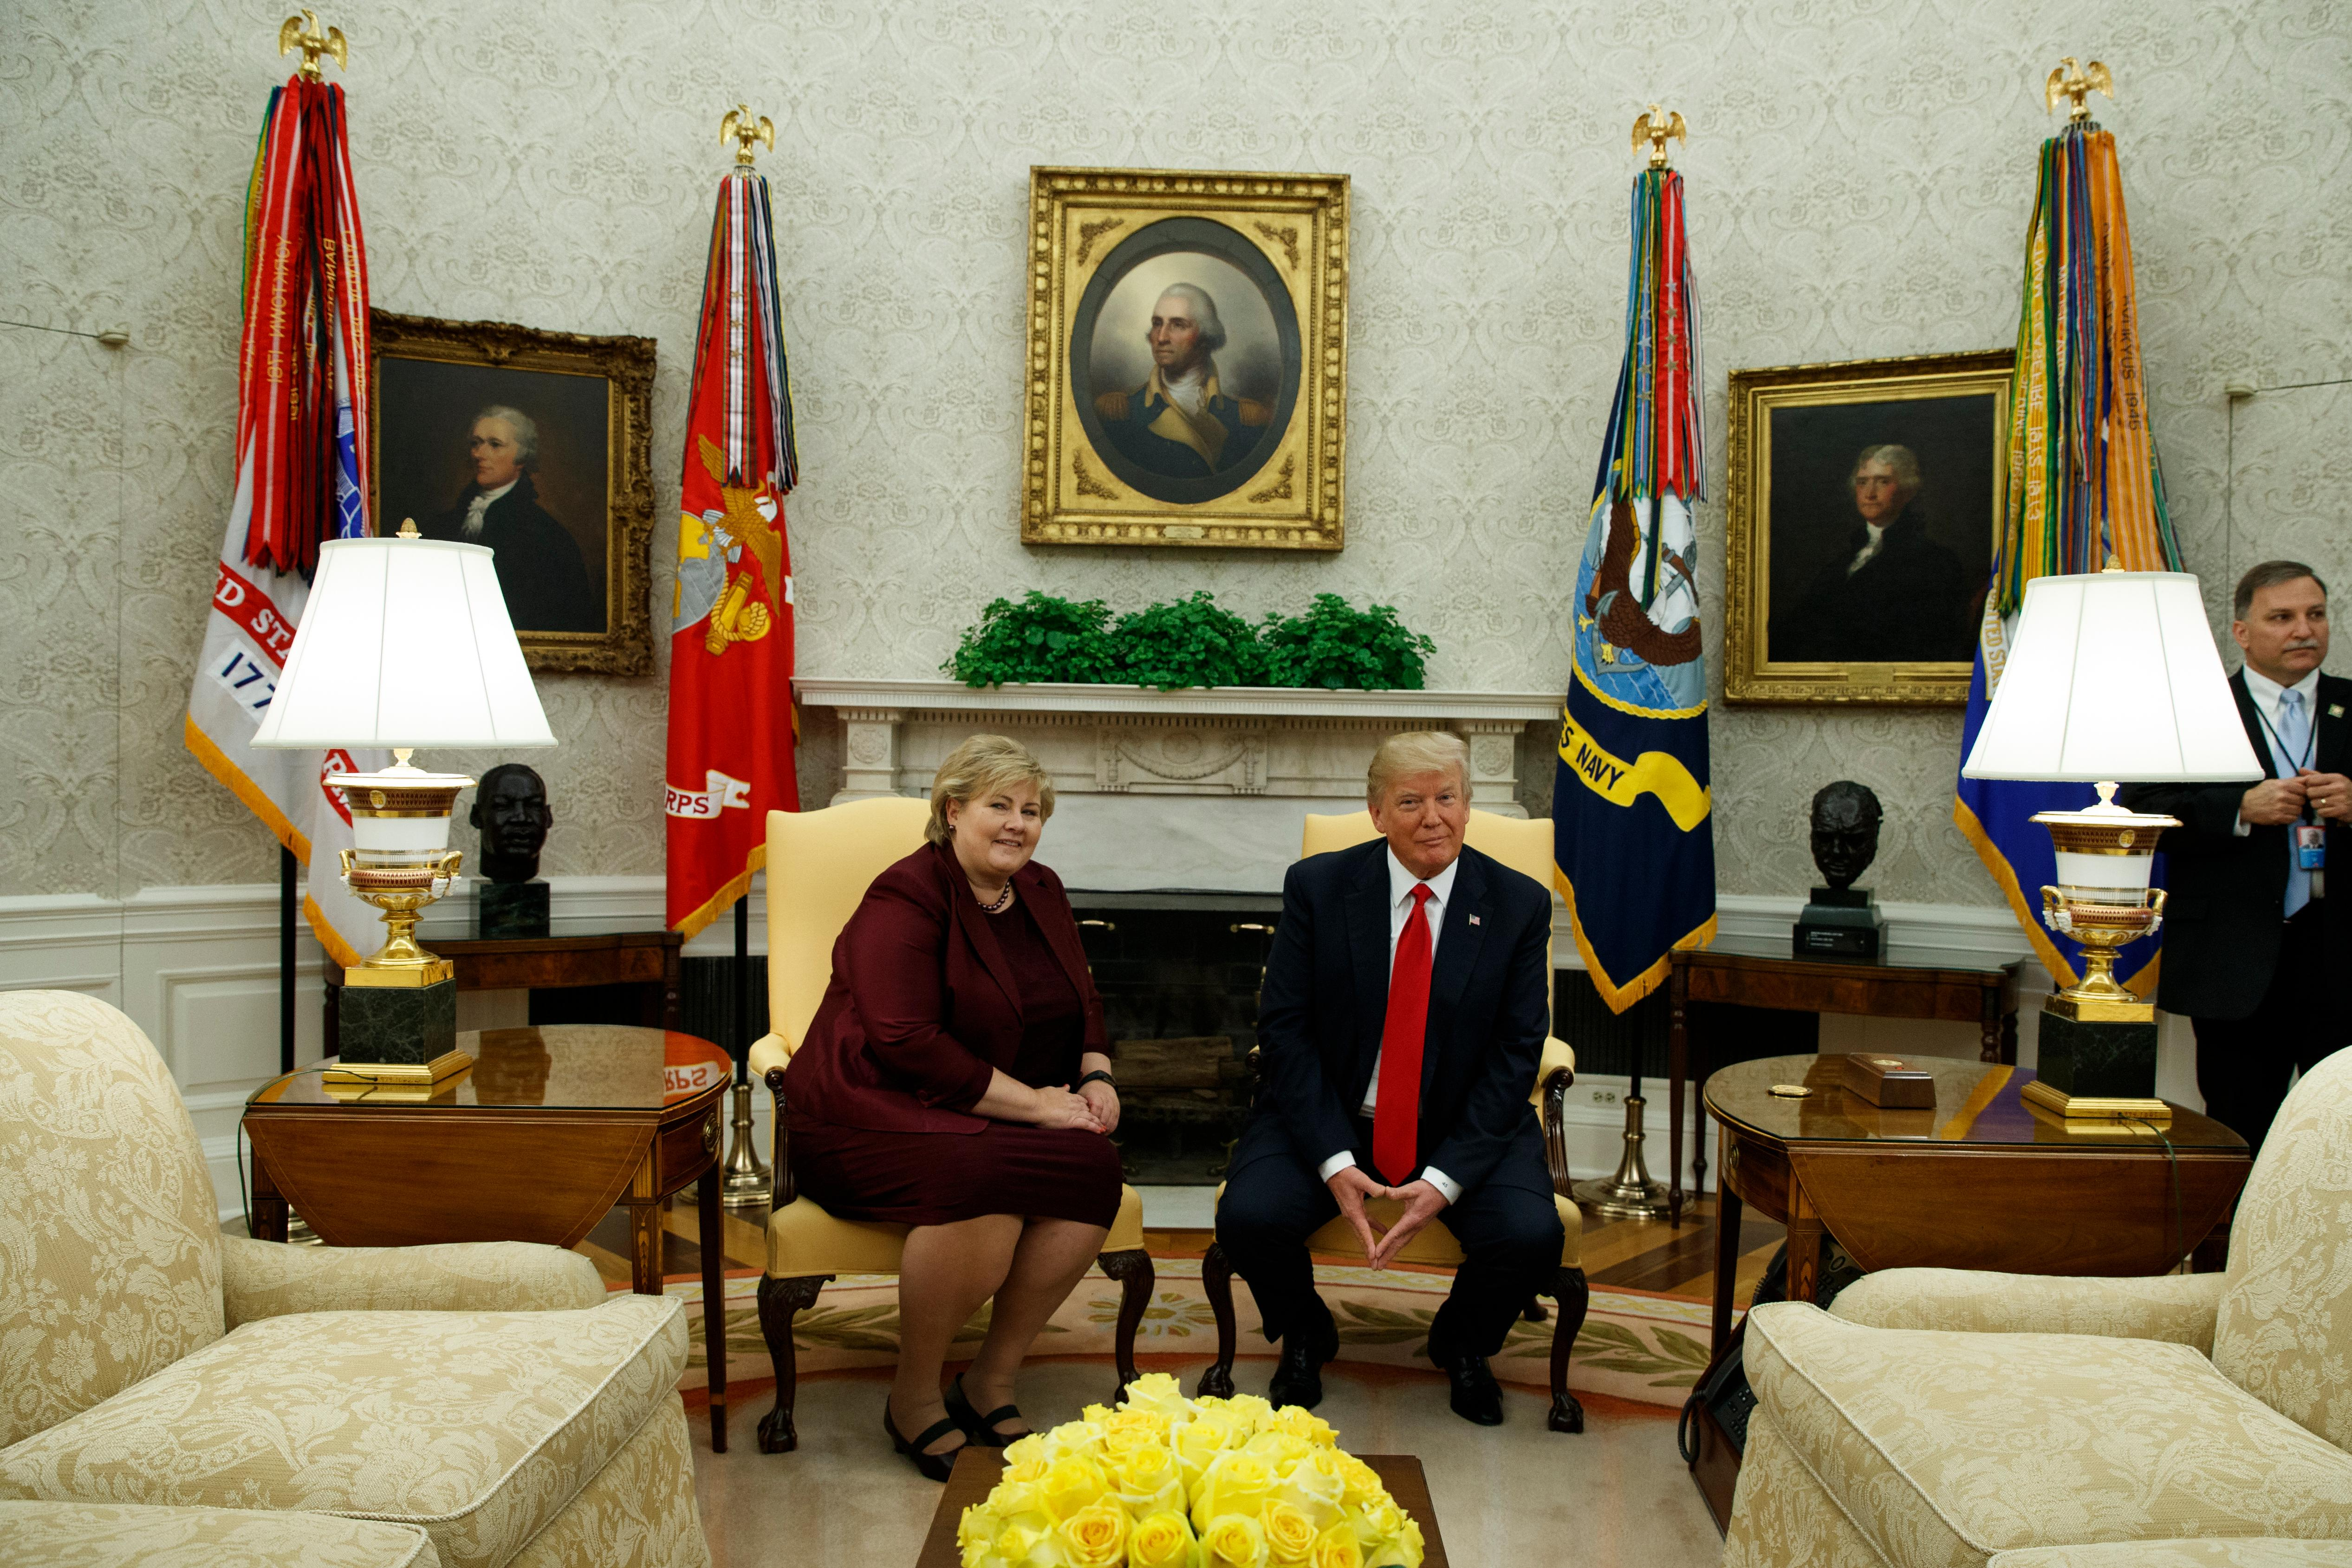 President Donald Trump meets with Norwegian Prime Minister Erna Solberg in the Oval Office of the White House, Wednesday, Jan. 10, 2018, in Washington. (AP Photo/Evan Vucci)